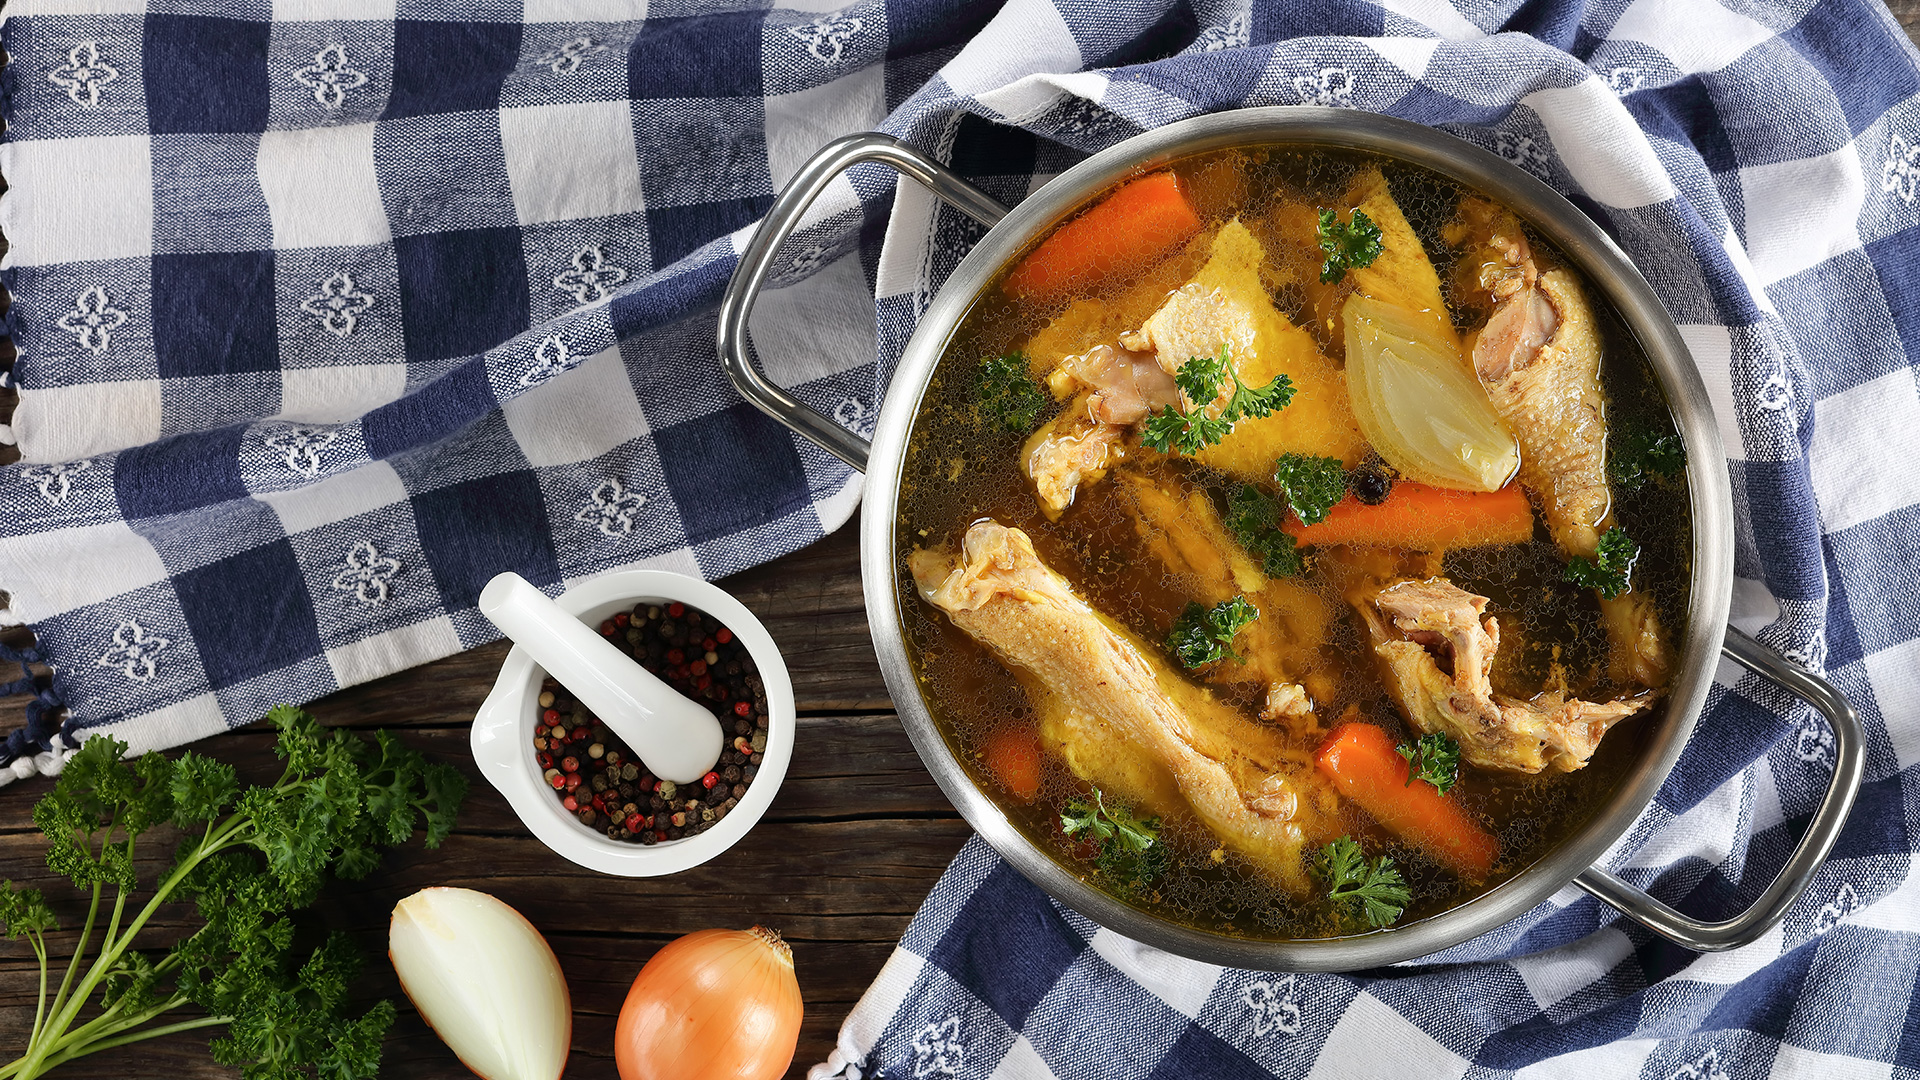 Clear Chicken broth with pieces of hen and rooster meat on bone in a metal cooking pot on wooden table with kitchen towel and ingredients on wooden table, view from above